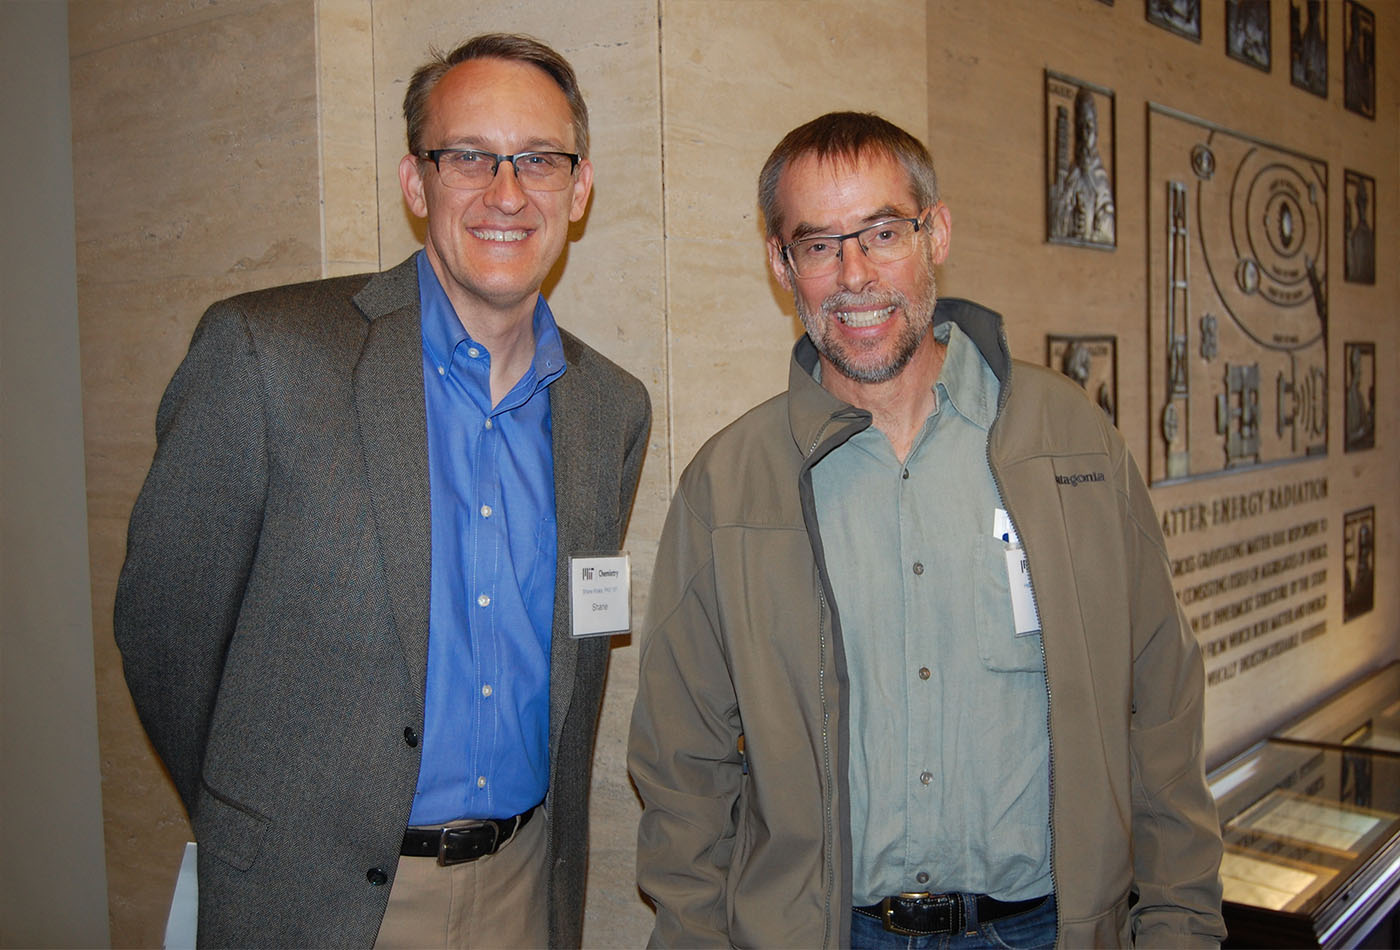 Former Seyferth graduate students: Shane Krska, PhD '97 and Henry Tracy, PhD '90 pose outside Room 6-120